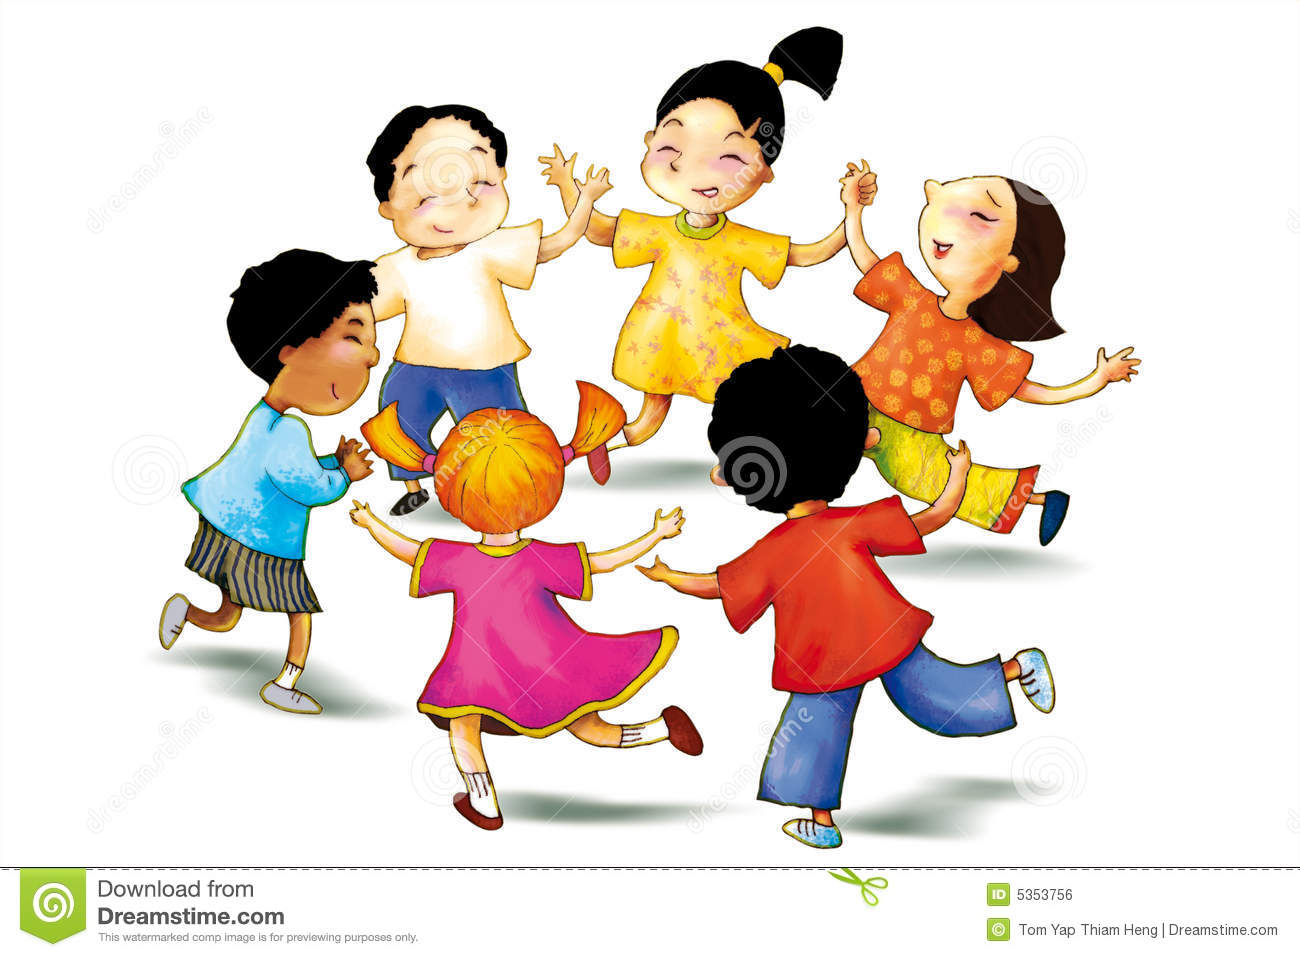 Concept illustration of children play together to show concept of